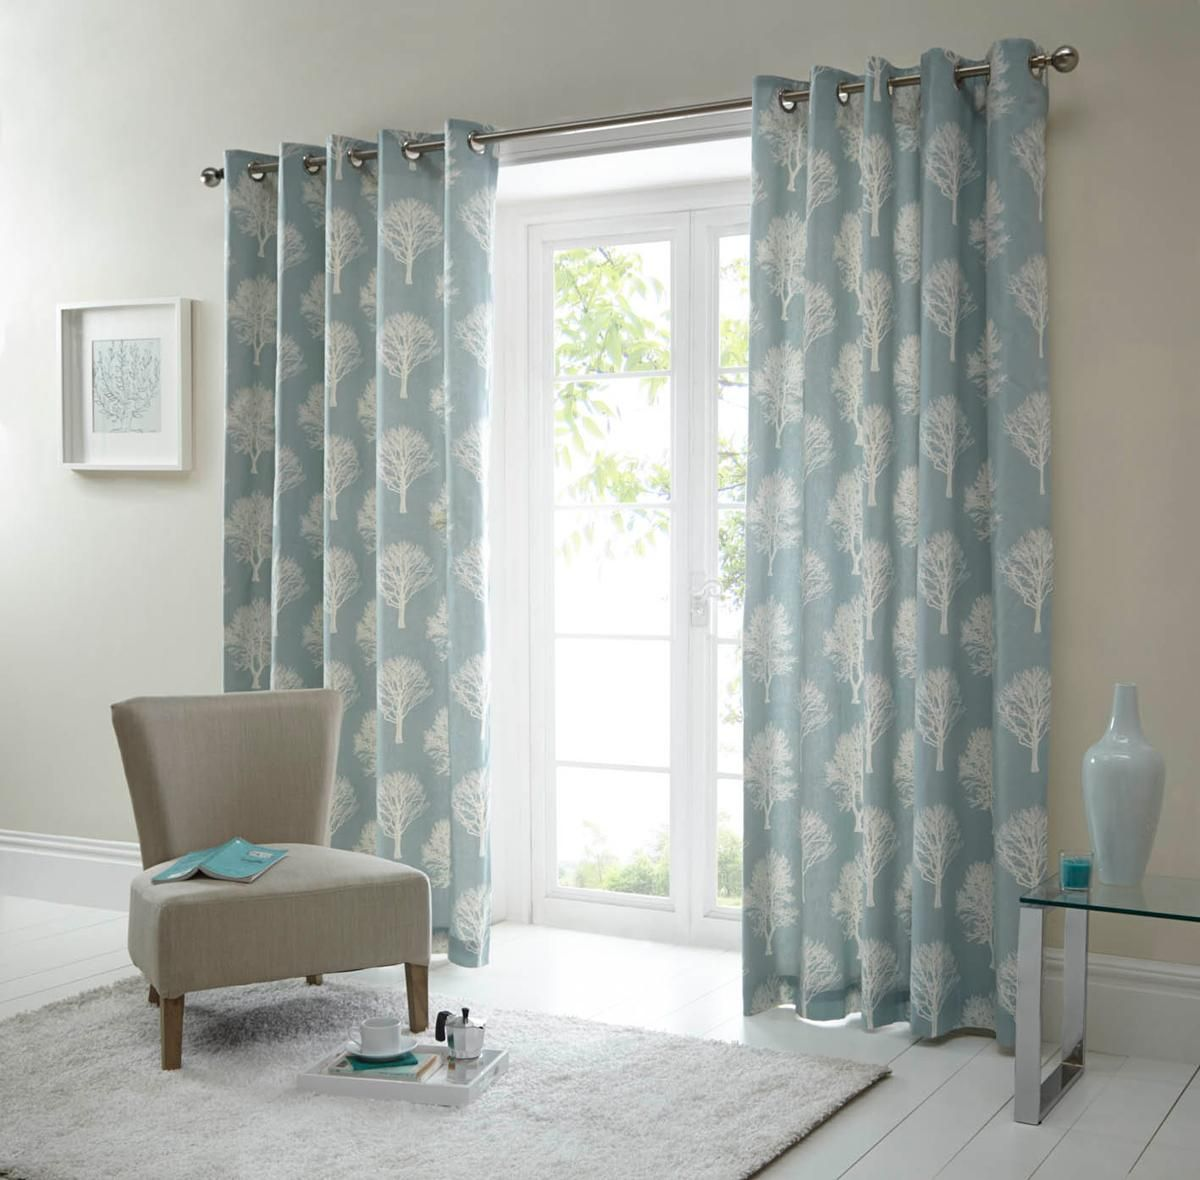 Woodland Ready Made Eyelet Curtains Duck Egg Blue Tree Curtains